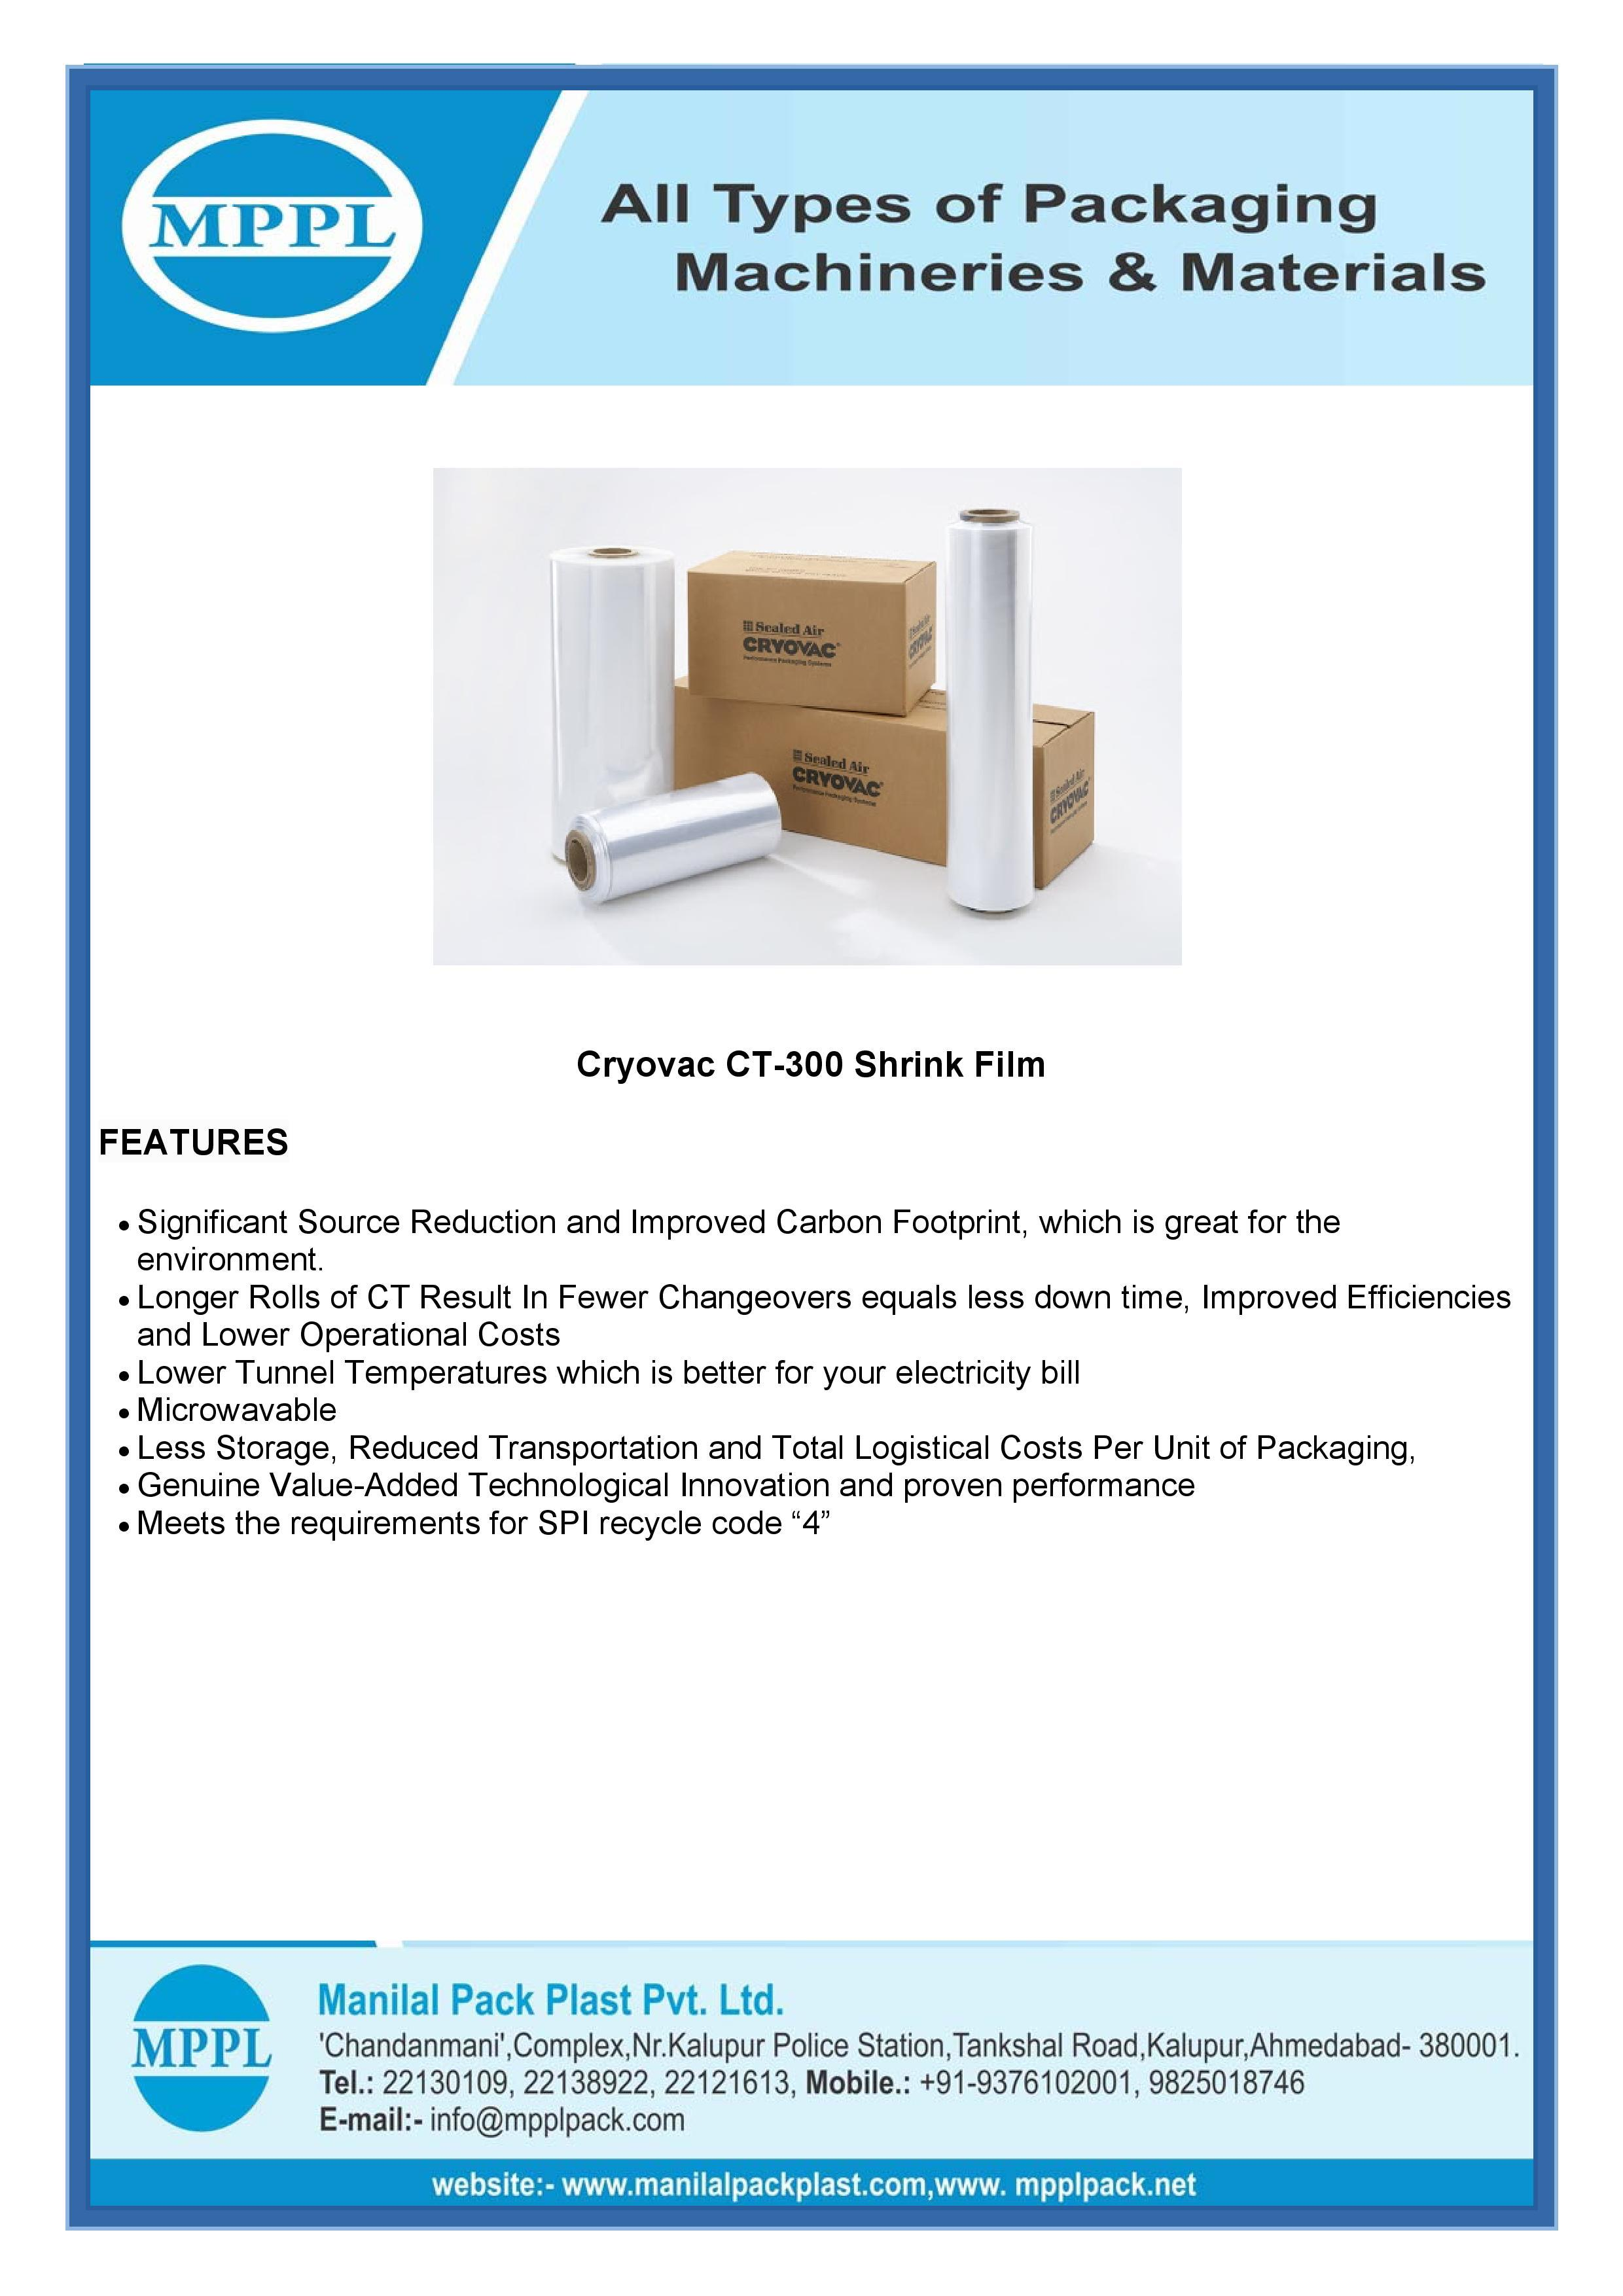 Cryovac CT-300 Shrink Film